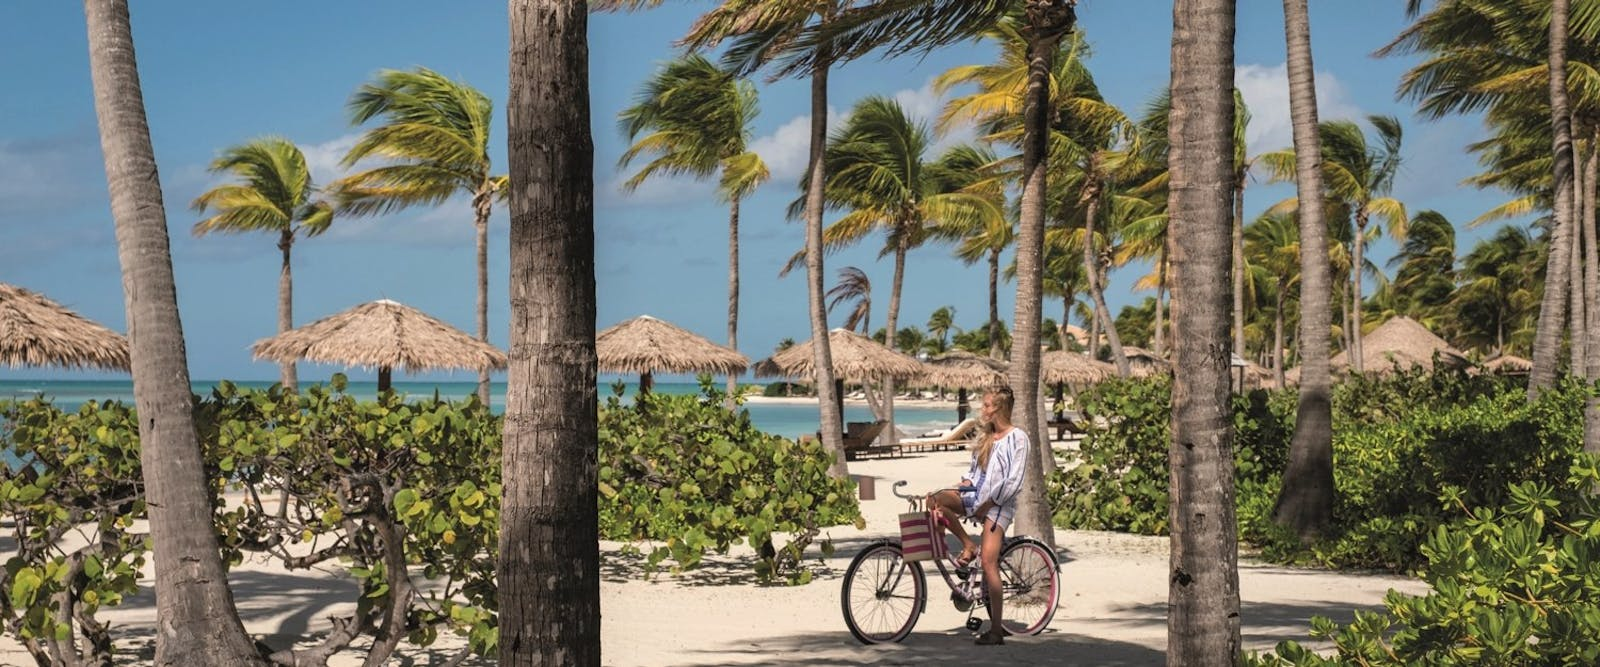 Cycle Around the Beautiful Resort at Jumby Bay Island, Antigua